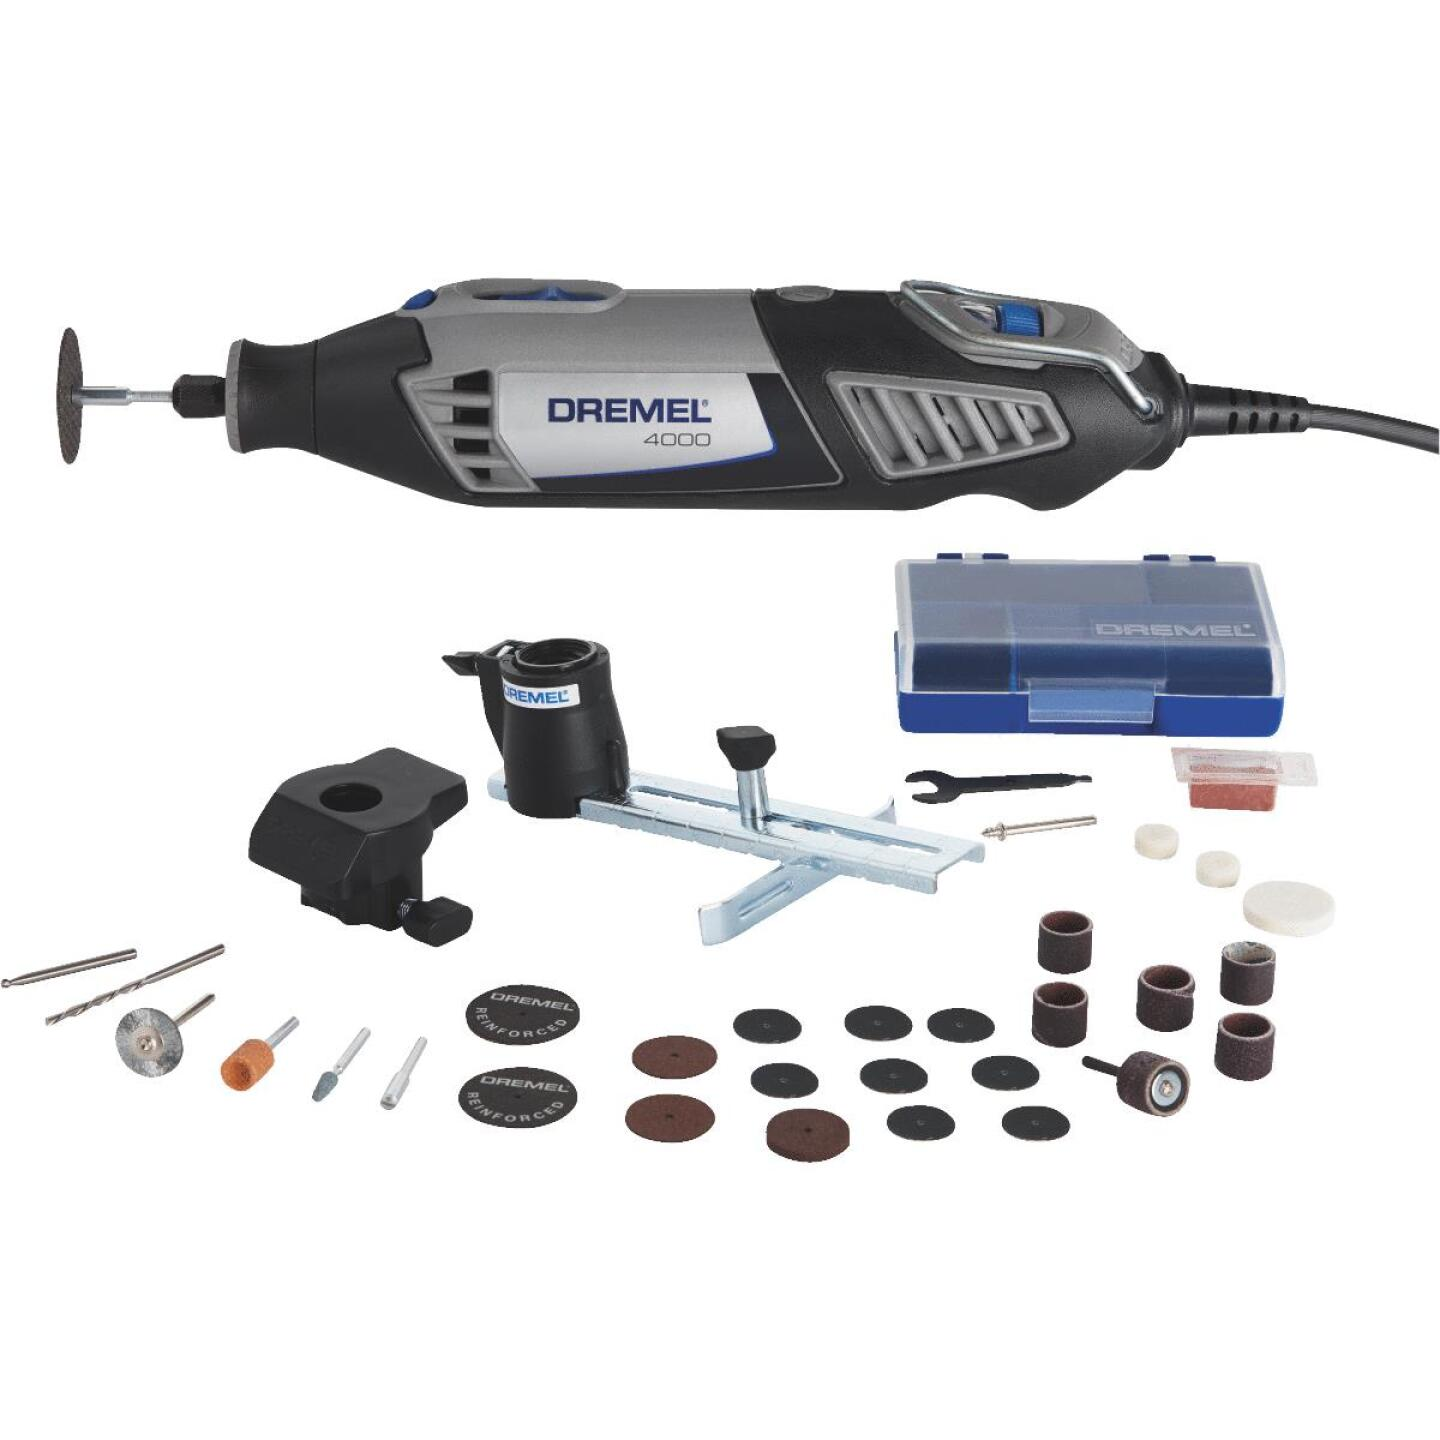 Dremel High Performance 120-Volt 1.6-Amp Variable Speed Electric Rotary Tool Kit Image 1